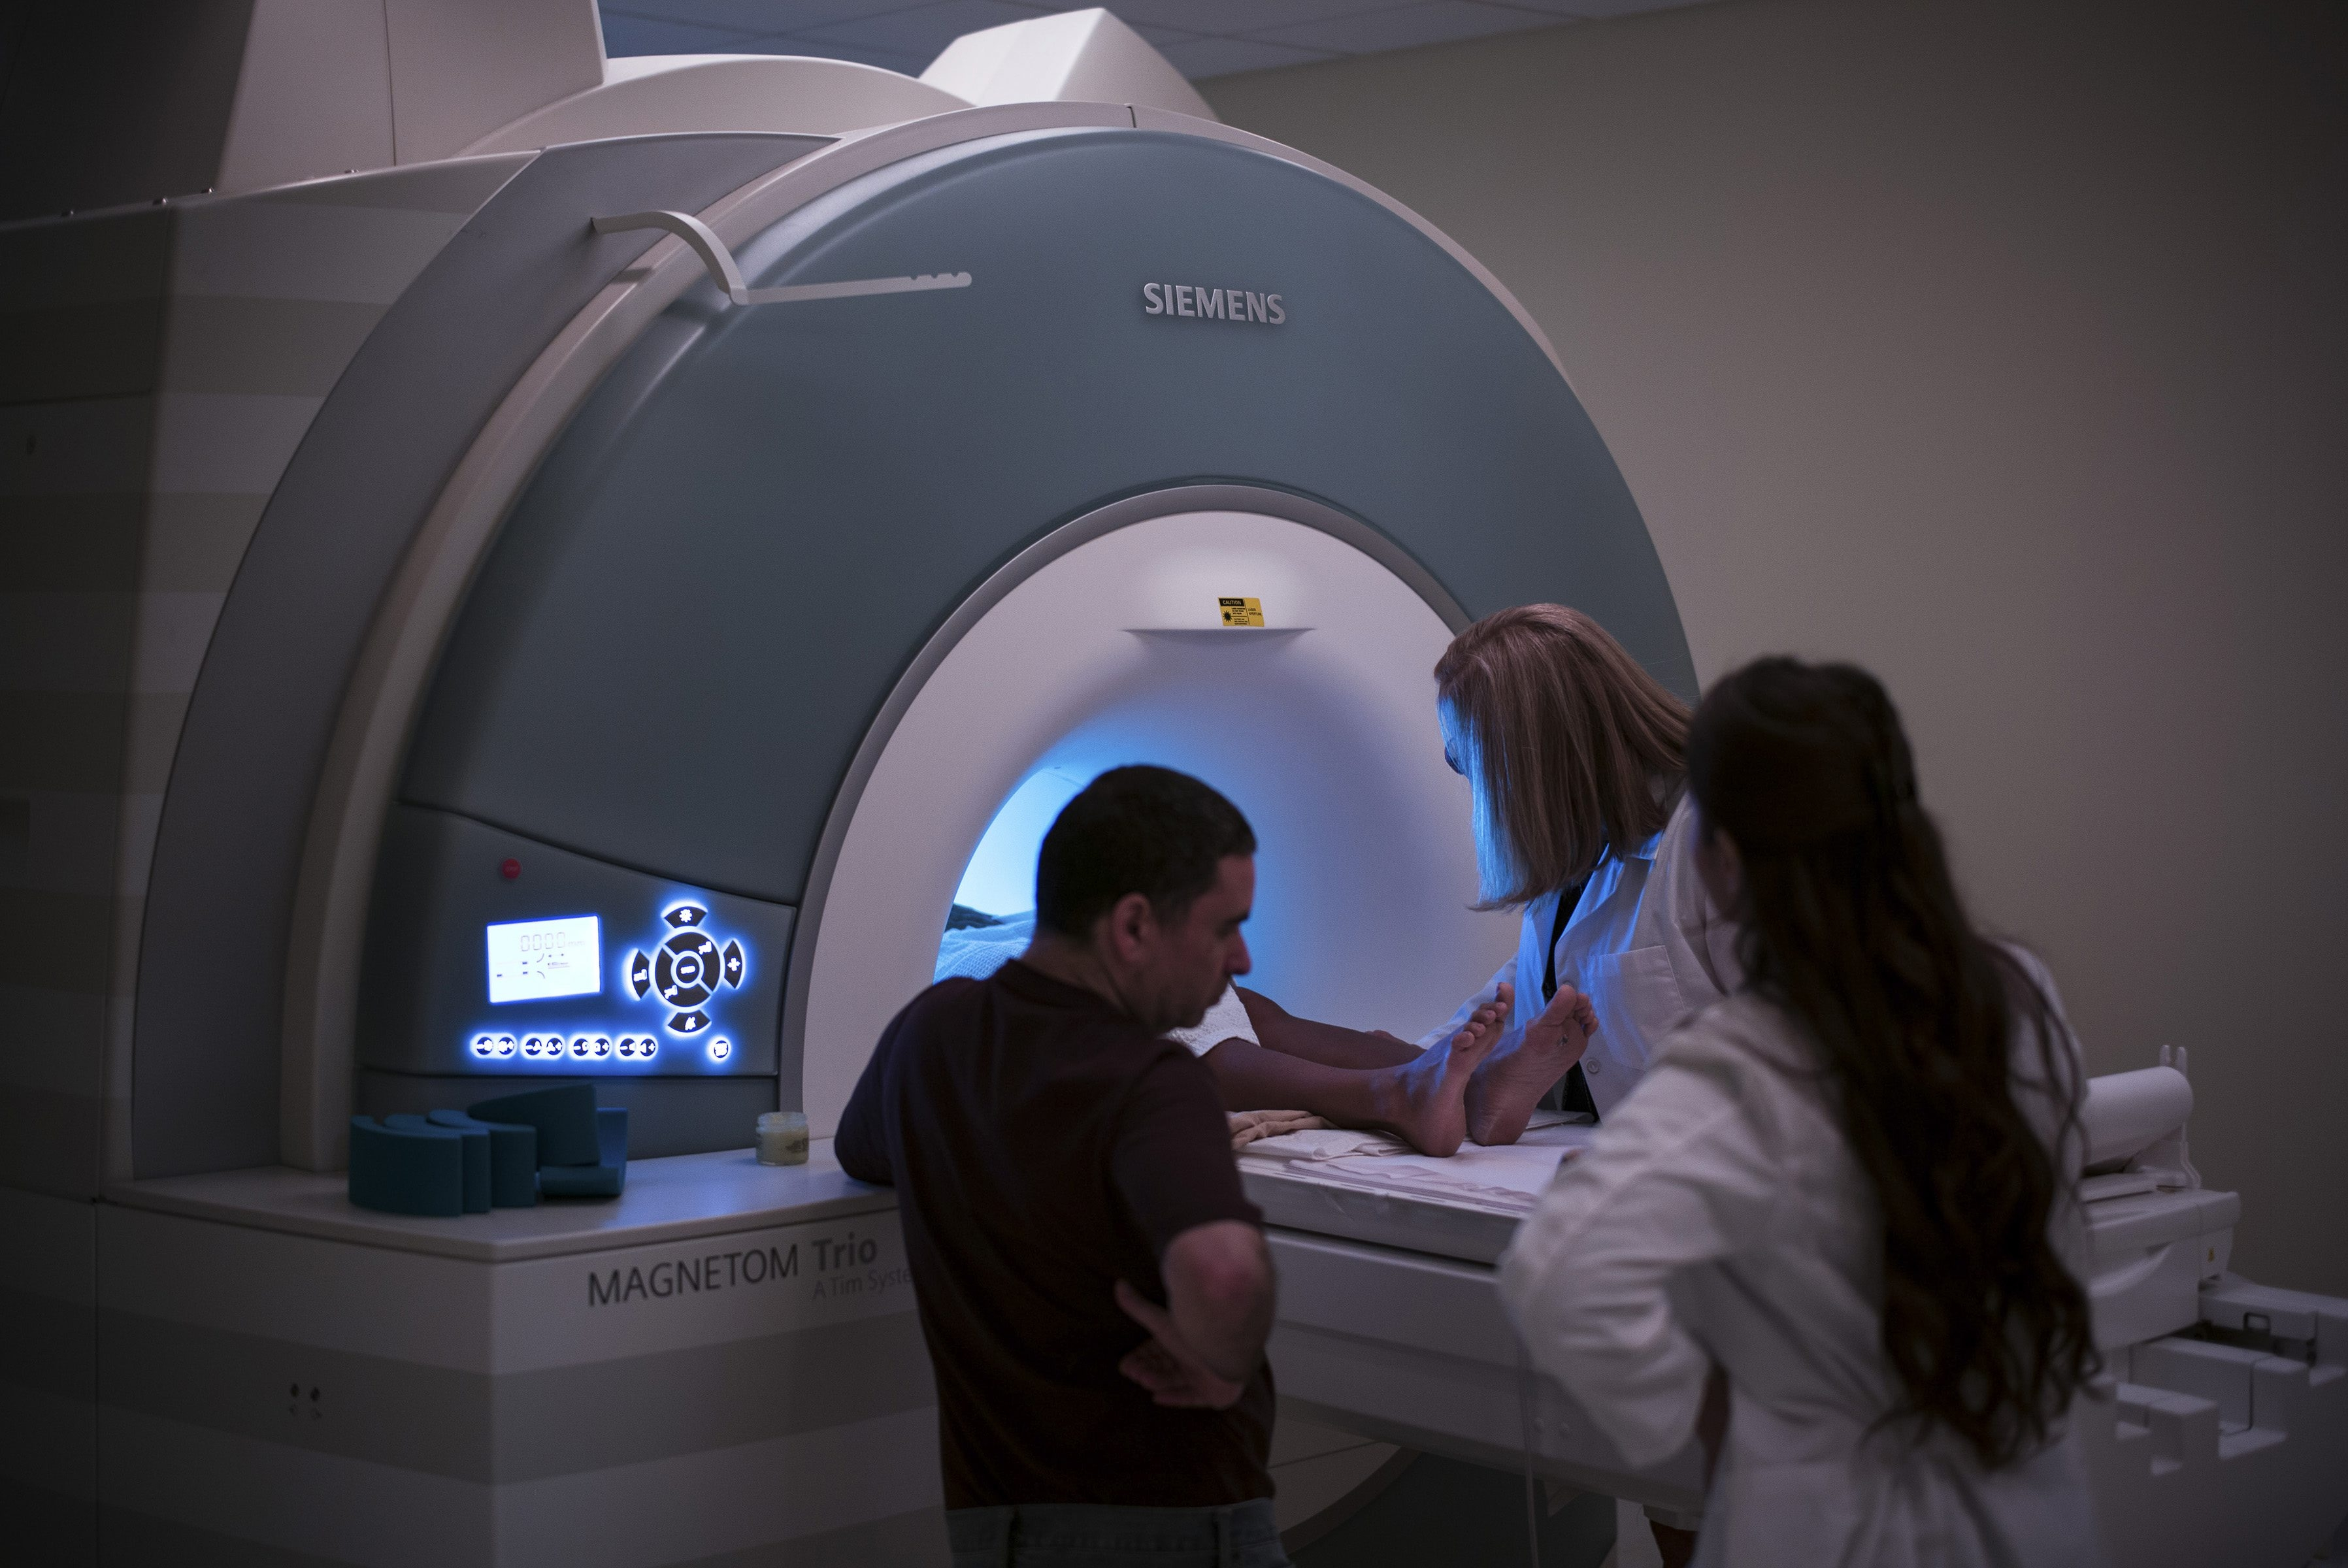 A law passed by New York State in 1966 requires health care providers to obtain permission from the State Health Department before adding new medical equipment, such as an MRI machine.